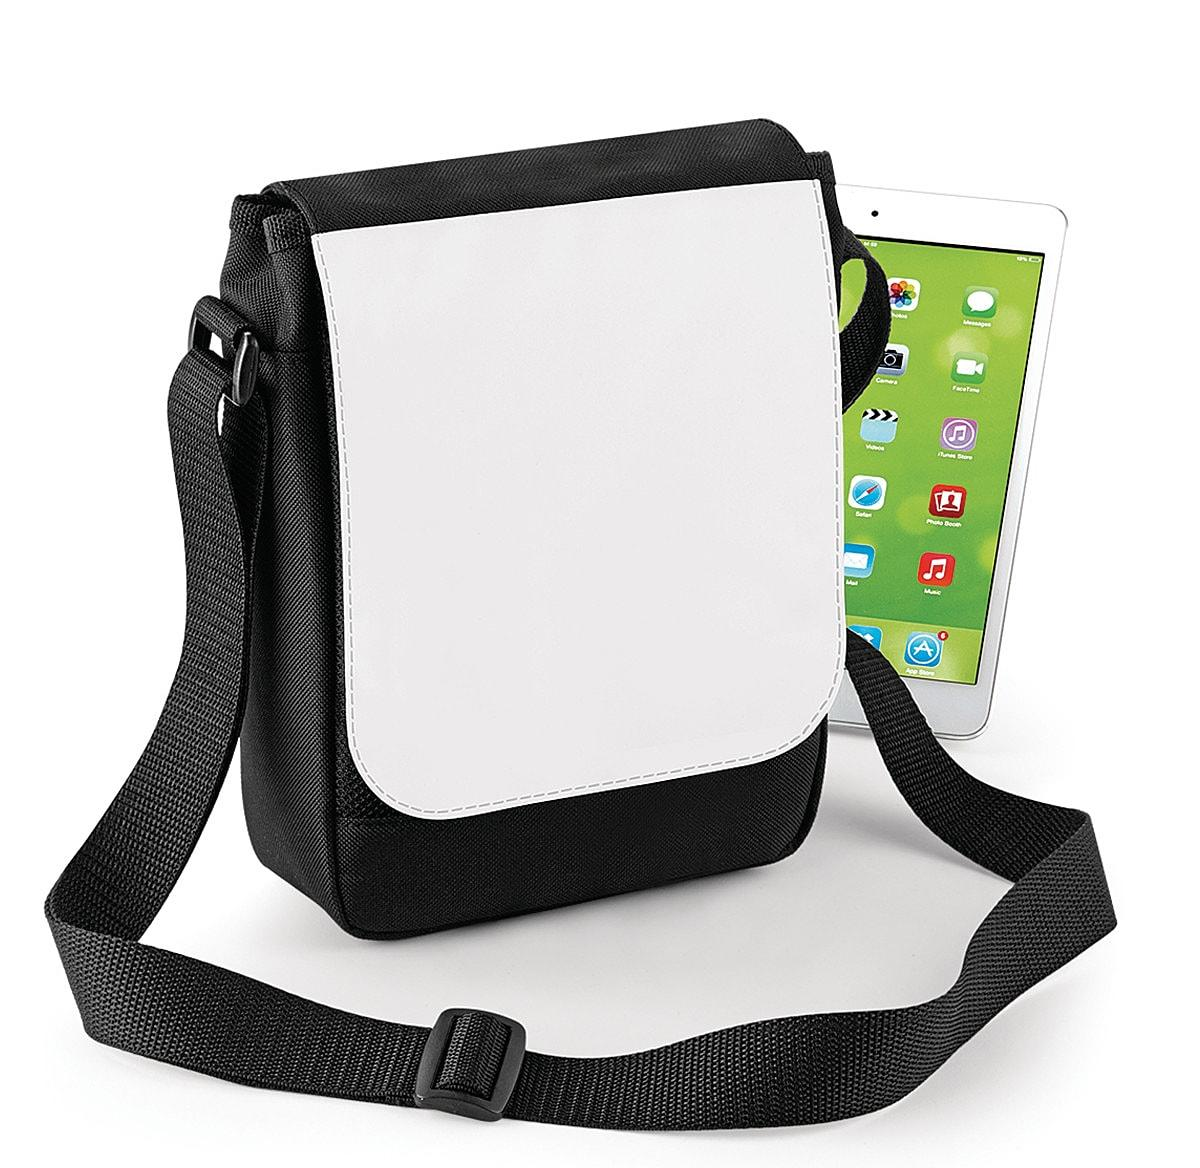 Bagbase Sublimation Digital Mini Reporte in Black (Product Code: BG961)